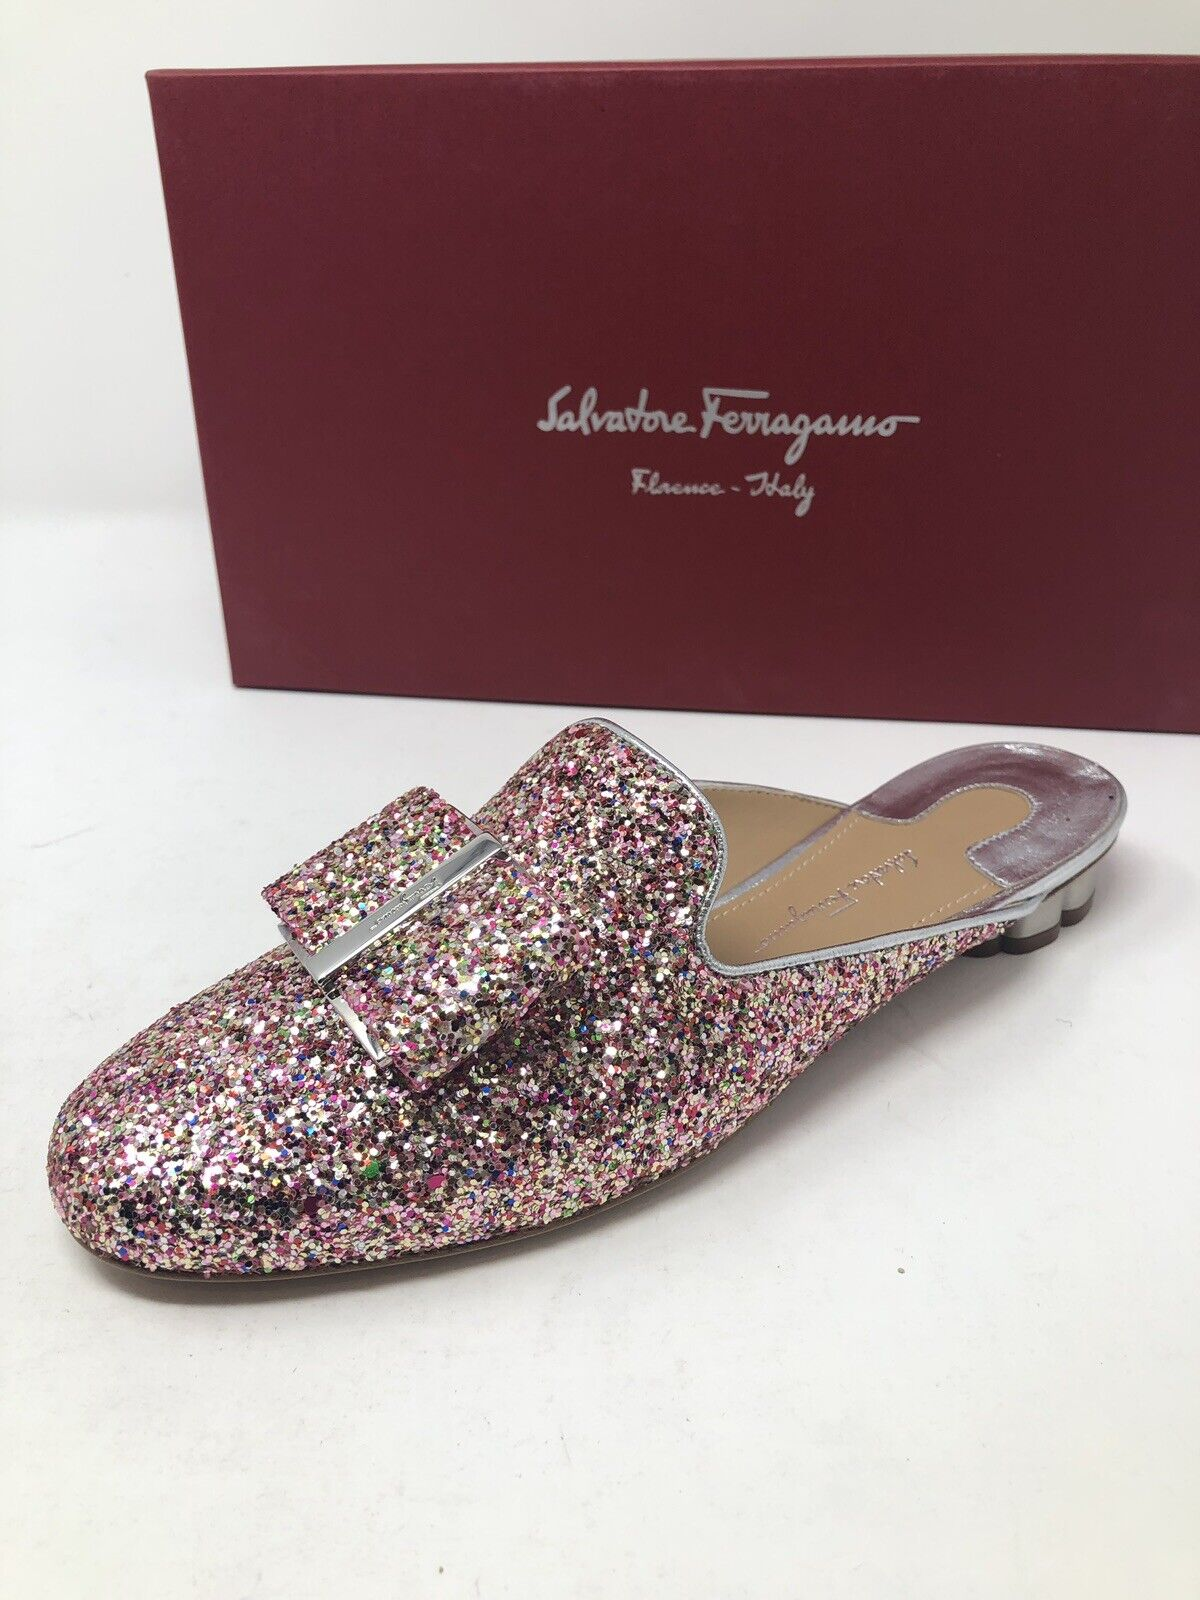 550 New Salvatore Ferragamo Womens Sciacca Pink Slippers Ladies shoes Size 7.5